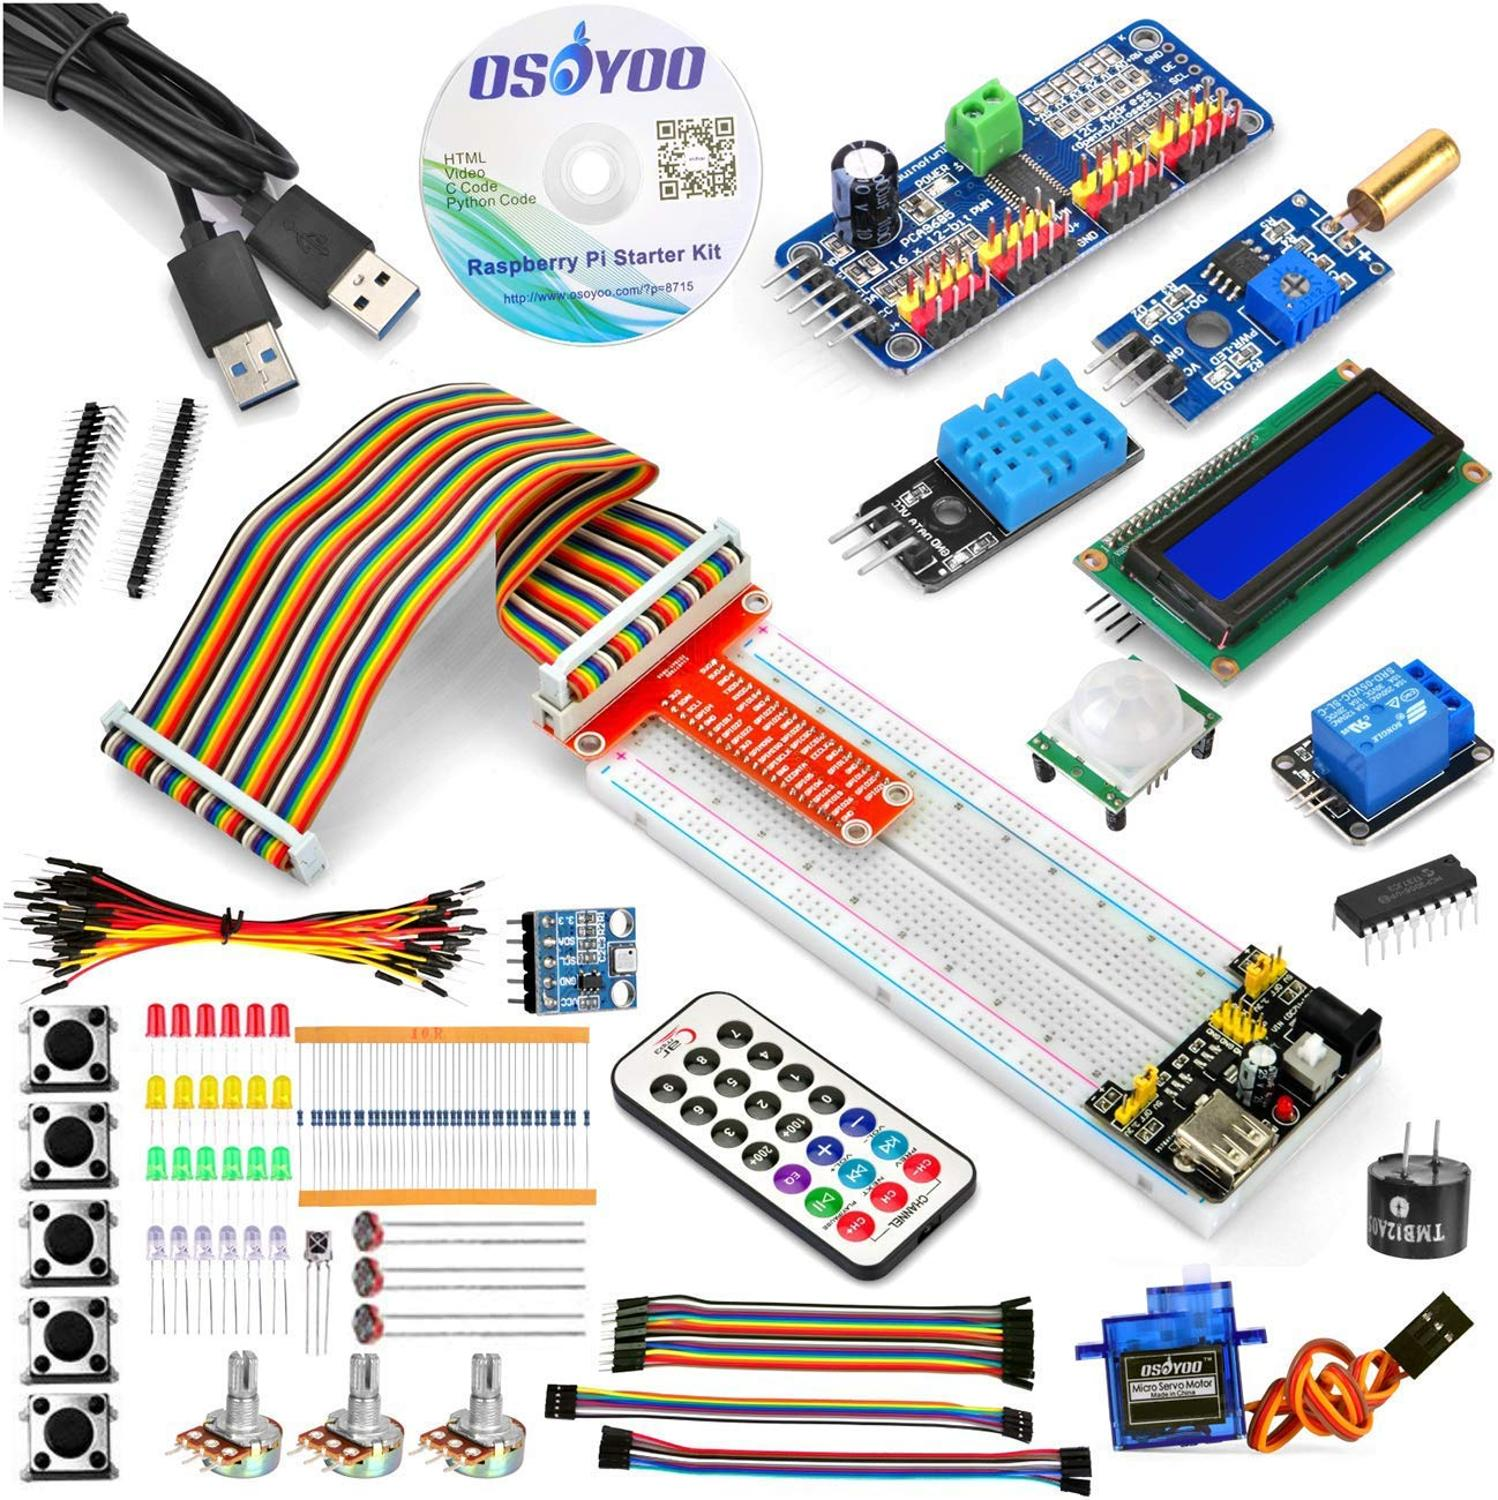 Raspberry Pi 3 Starter Kit DIY Electronic RPi Learning Kit for  Beginner Display pca9685 with C/Python code and video tutorialDemo  Board